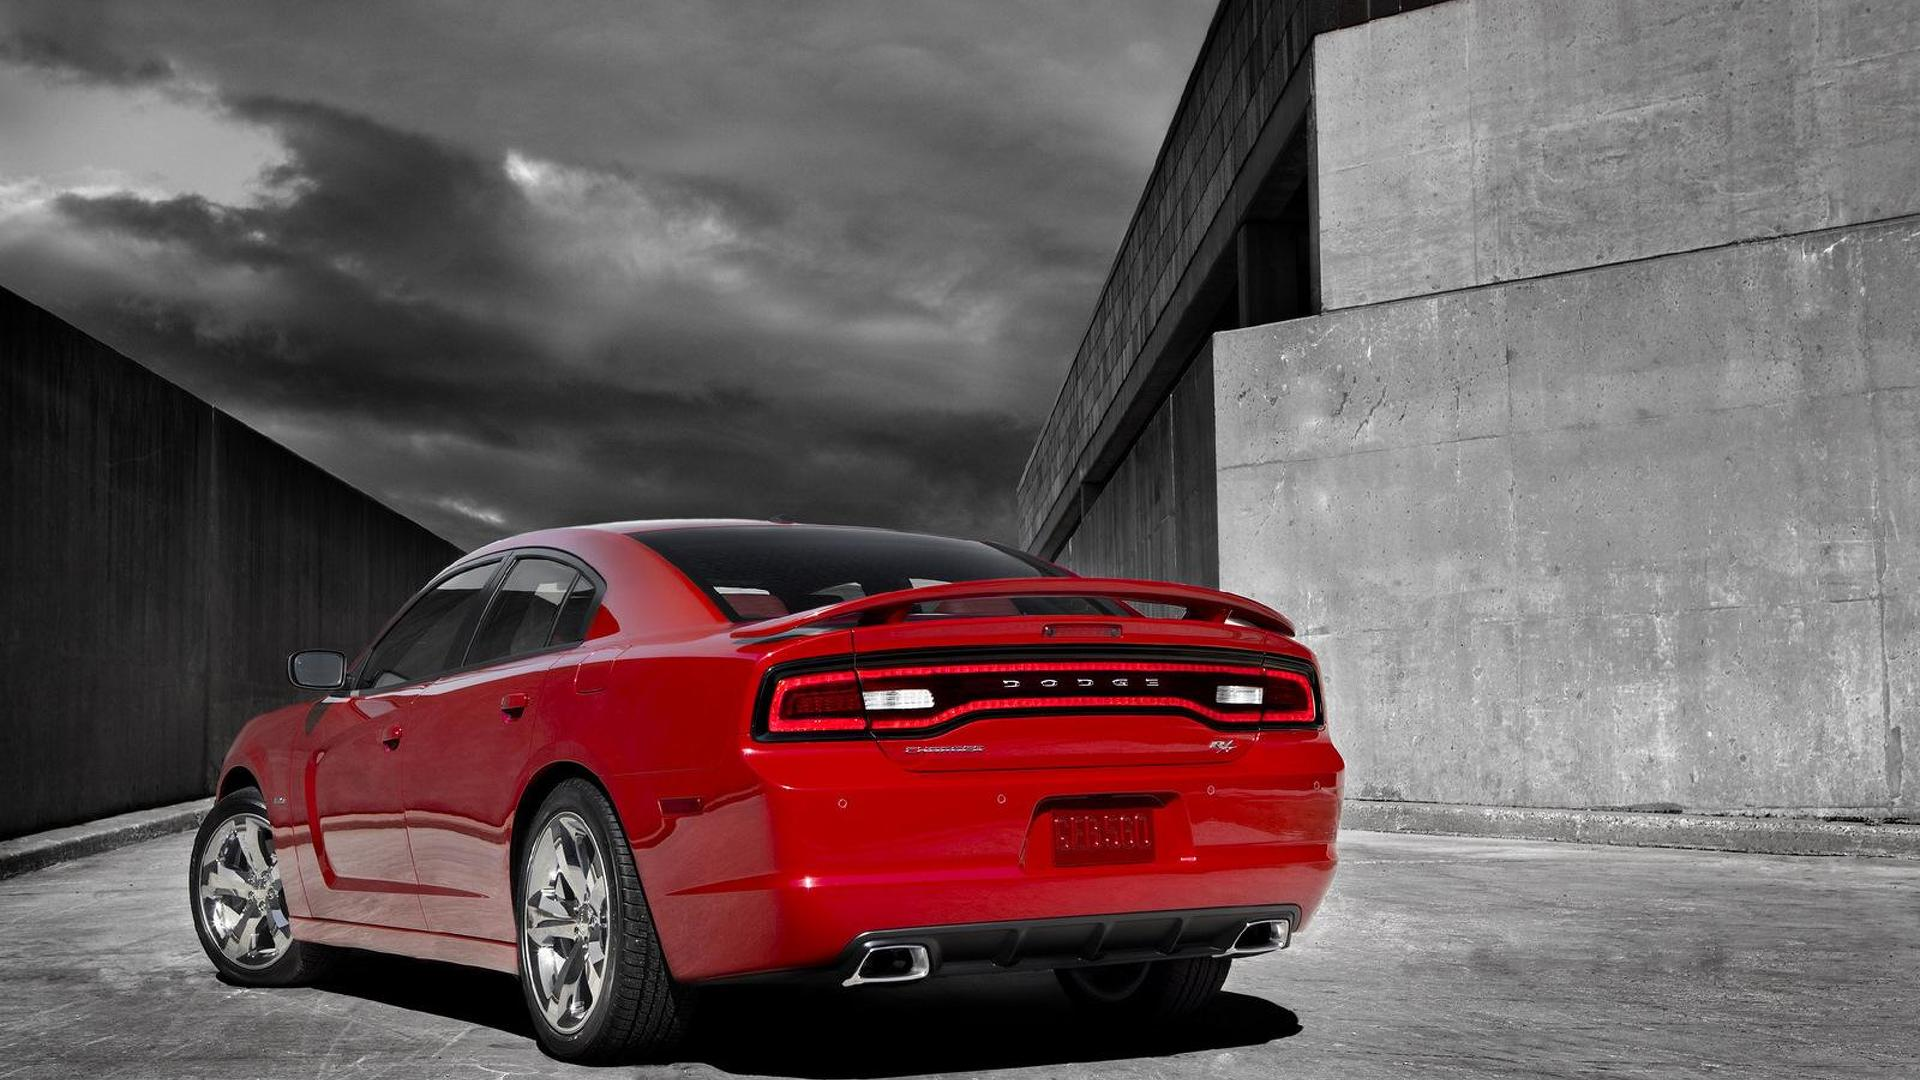 2011 Dodge Charger Revealed